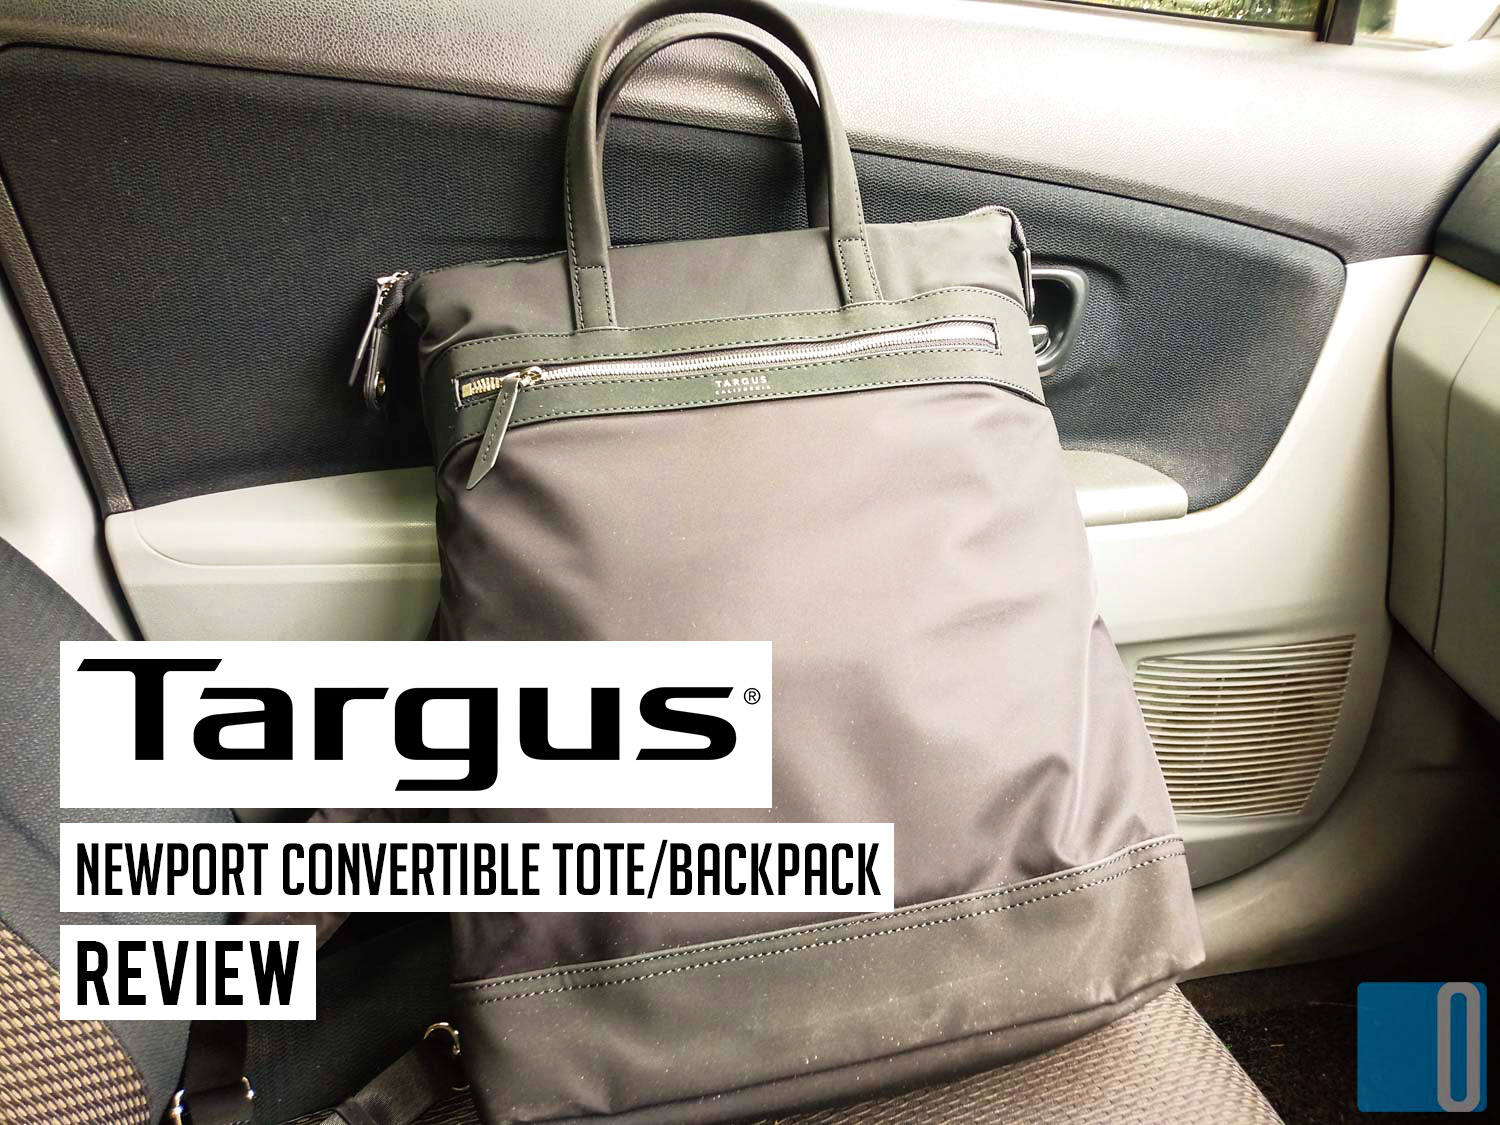 Targus Newport Convertible Backpack/Tote Review - Slim And Fashionable